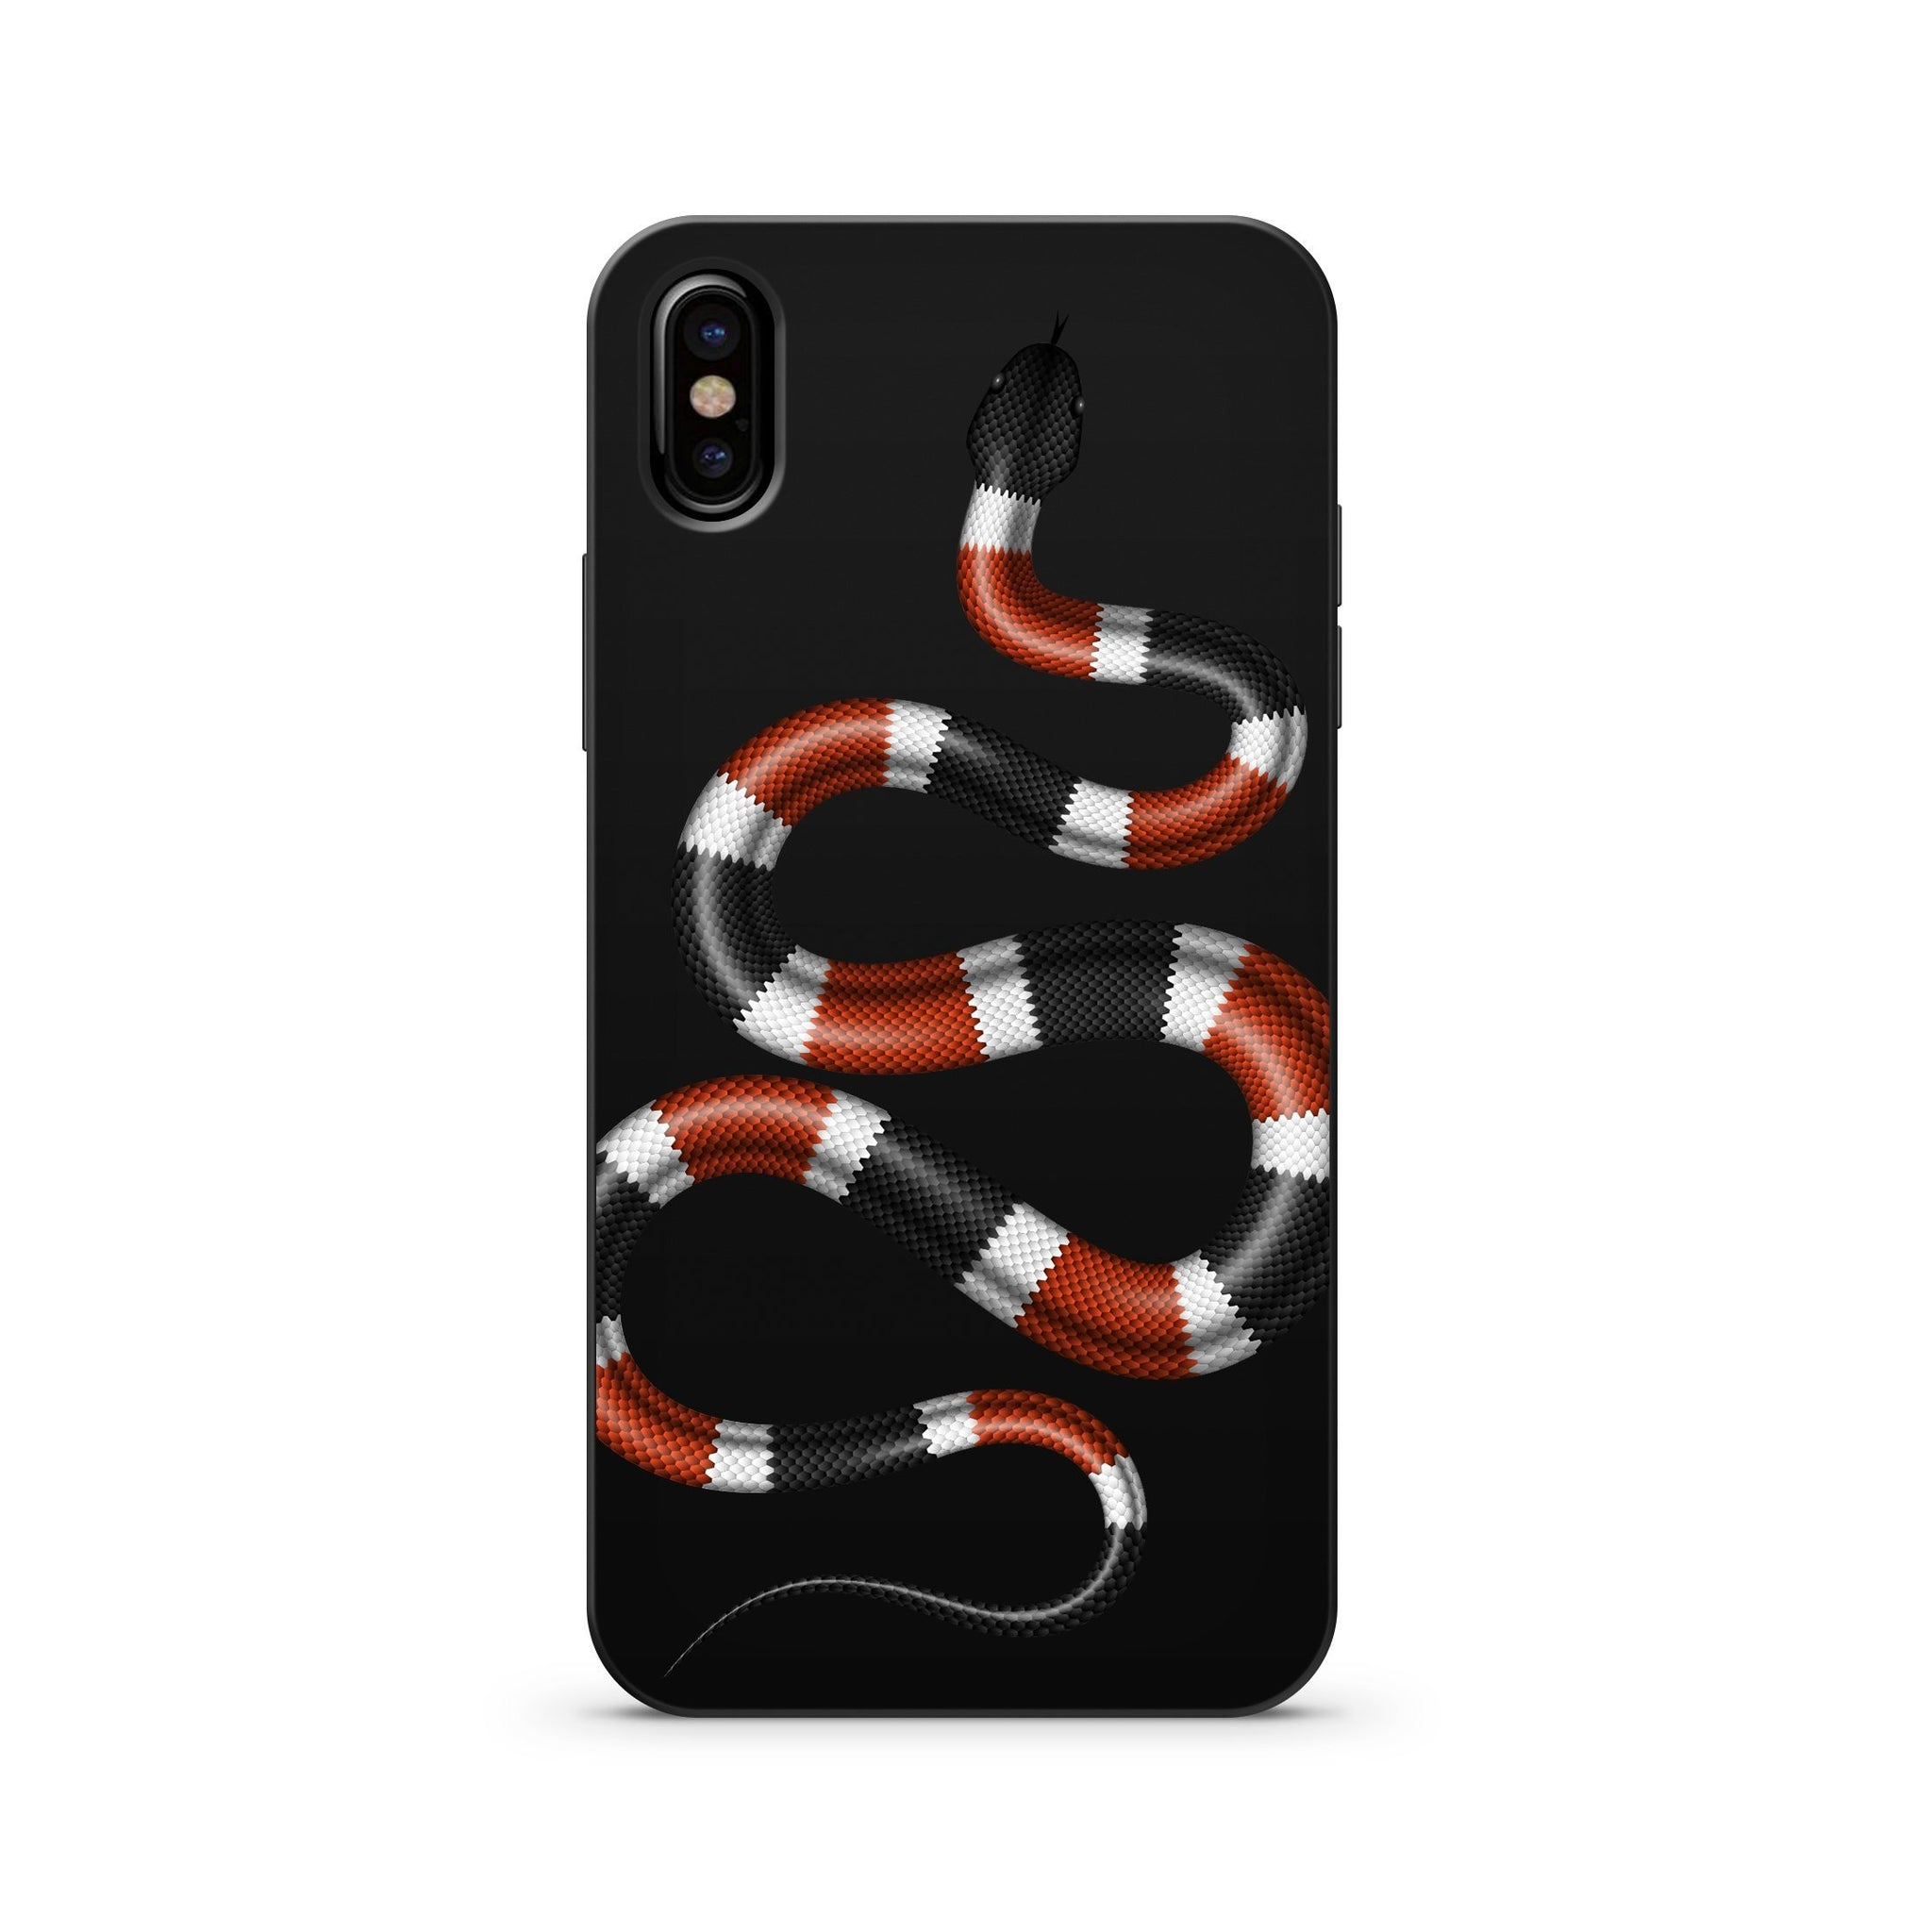 Black Wood Printed iPhone X Case - Coral Snake